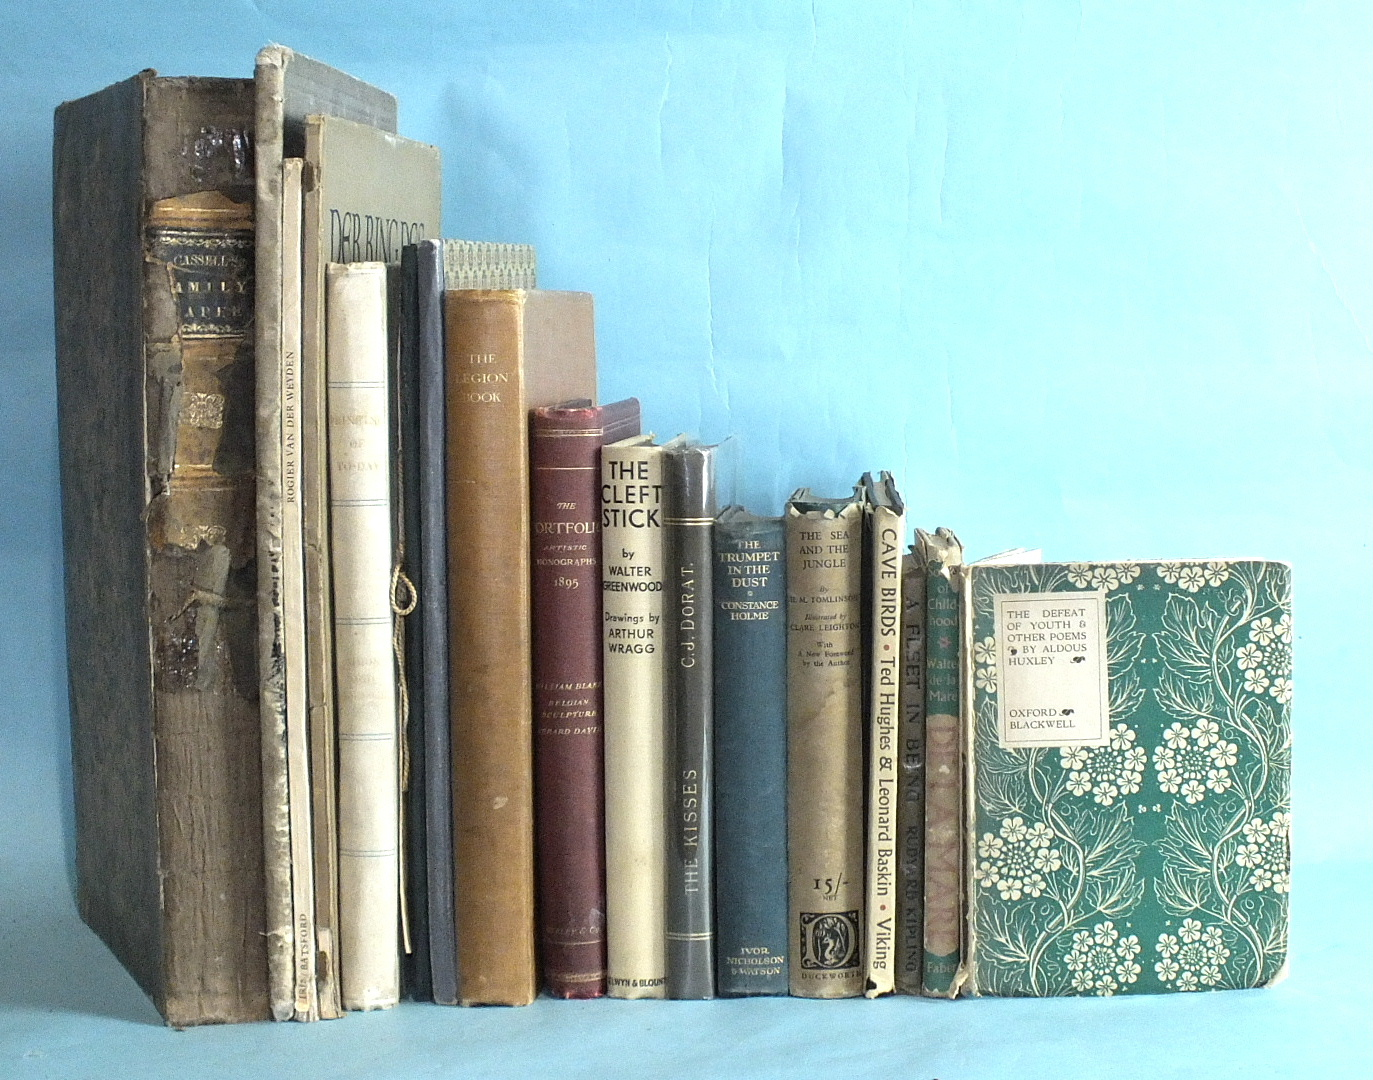 Lot 32 - Simon (Oliver) and Rodenburg (Julius), Printing of To-Day, illus, bds, fo, 1928, other volumes on